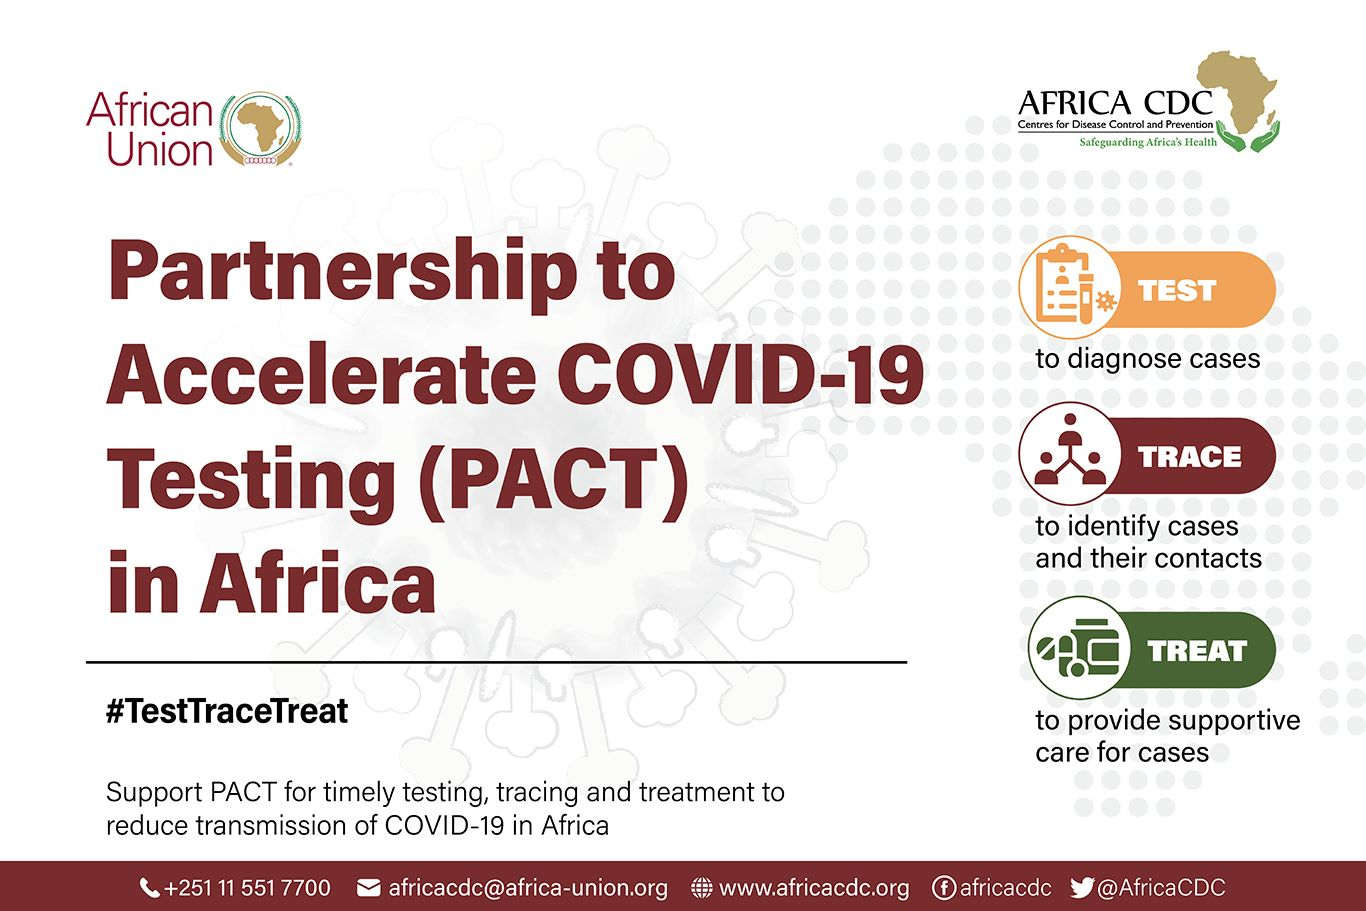 The African Union and Africa CDC will virtually rollout the Partnership to Accelerate COVID-19 Testing (PACT) in Africa tomorrow 4 June, 2020 at 11.00 am Eastern Africa Time.